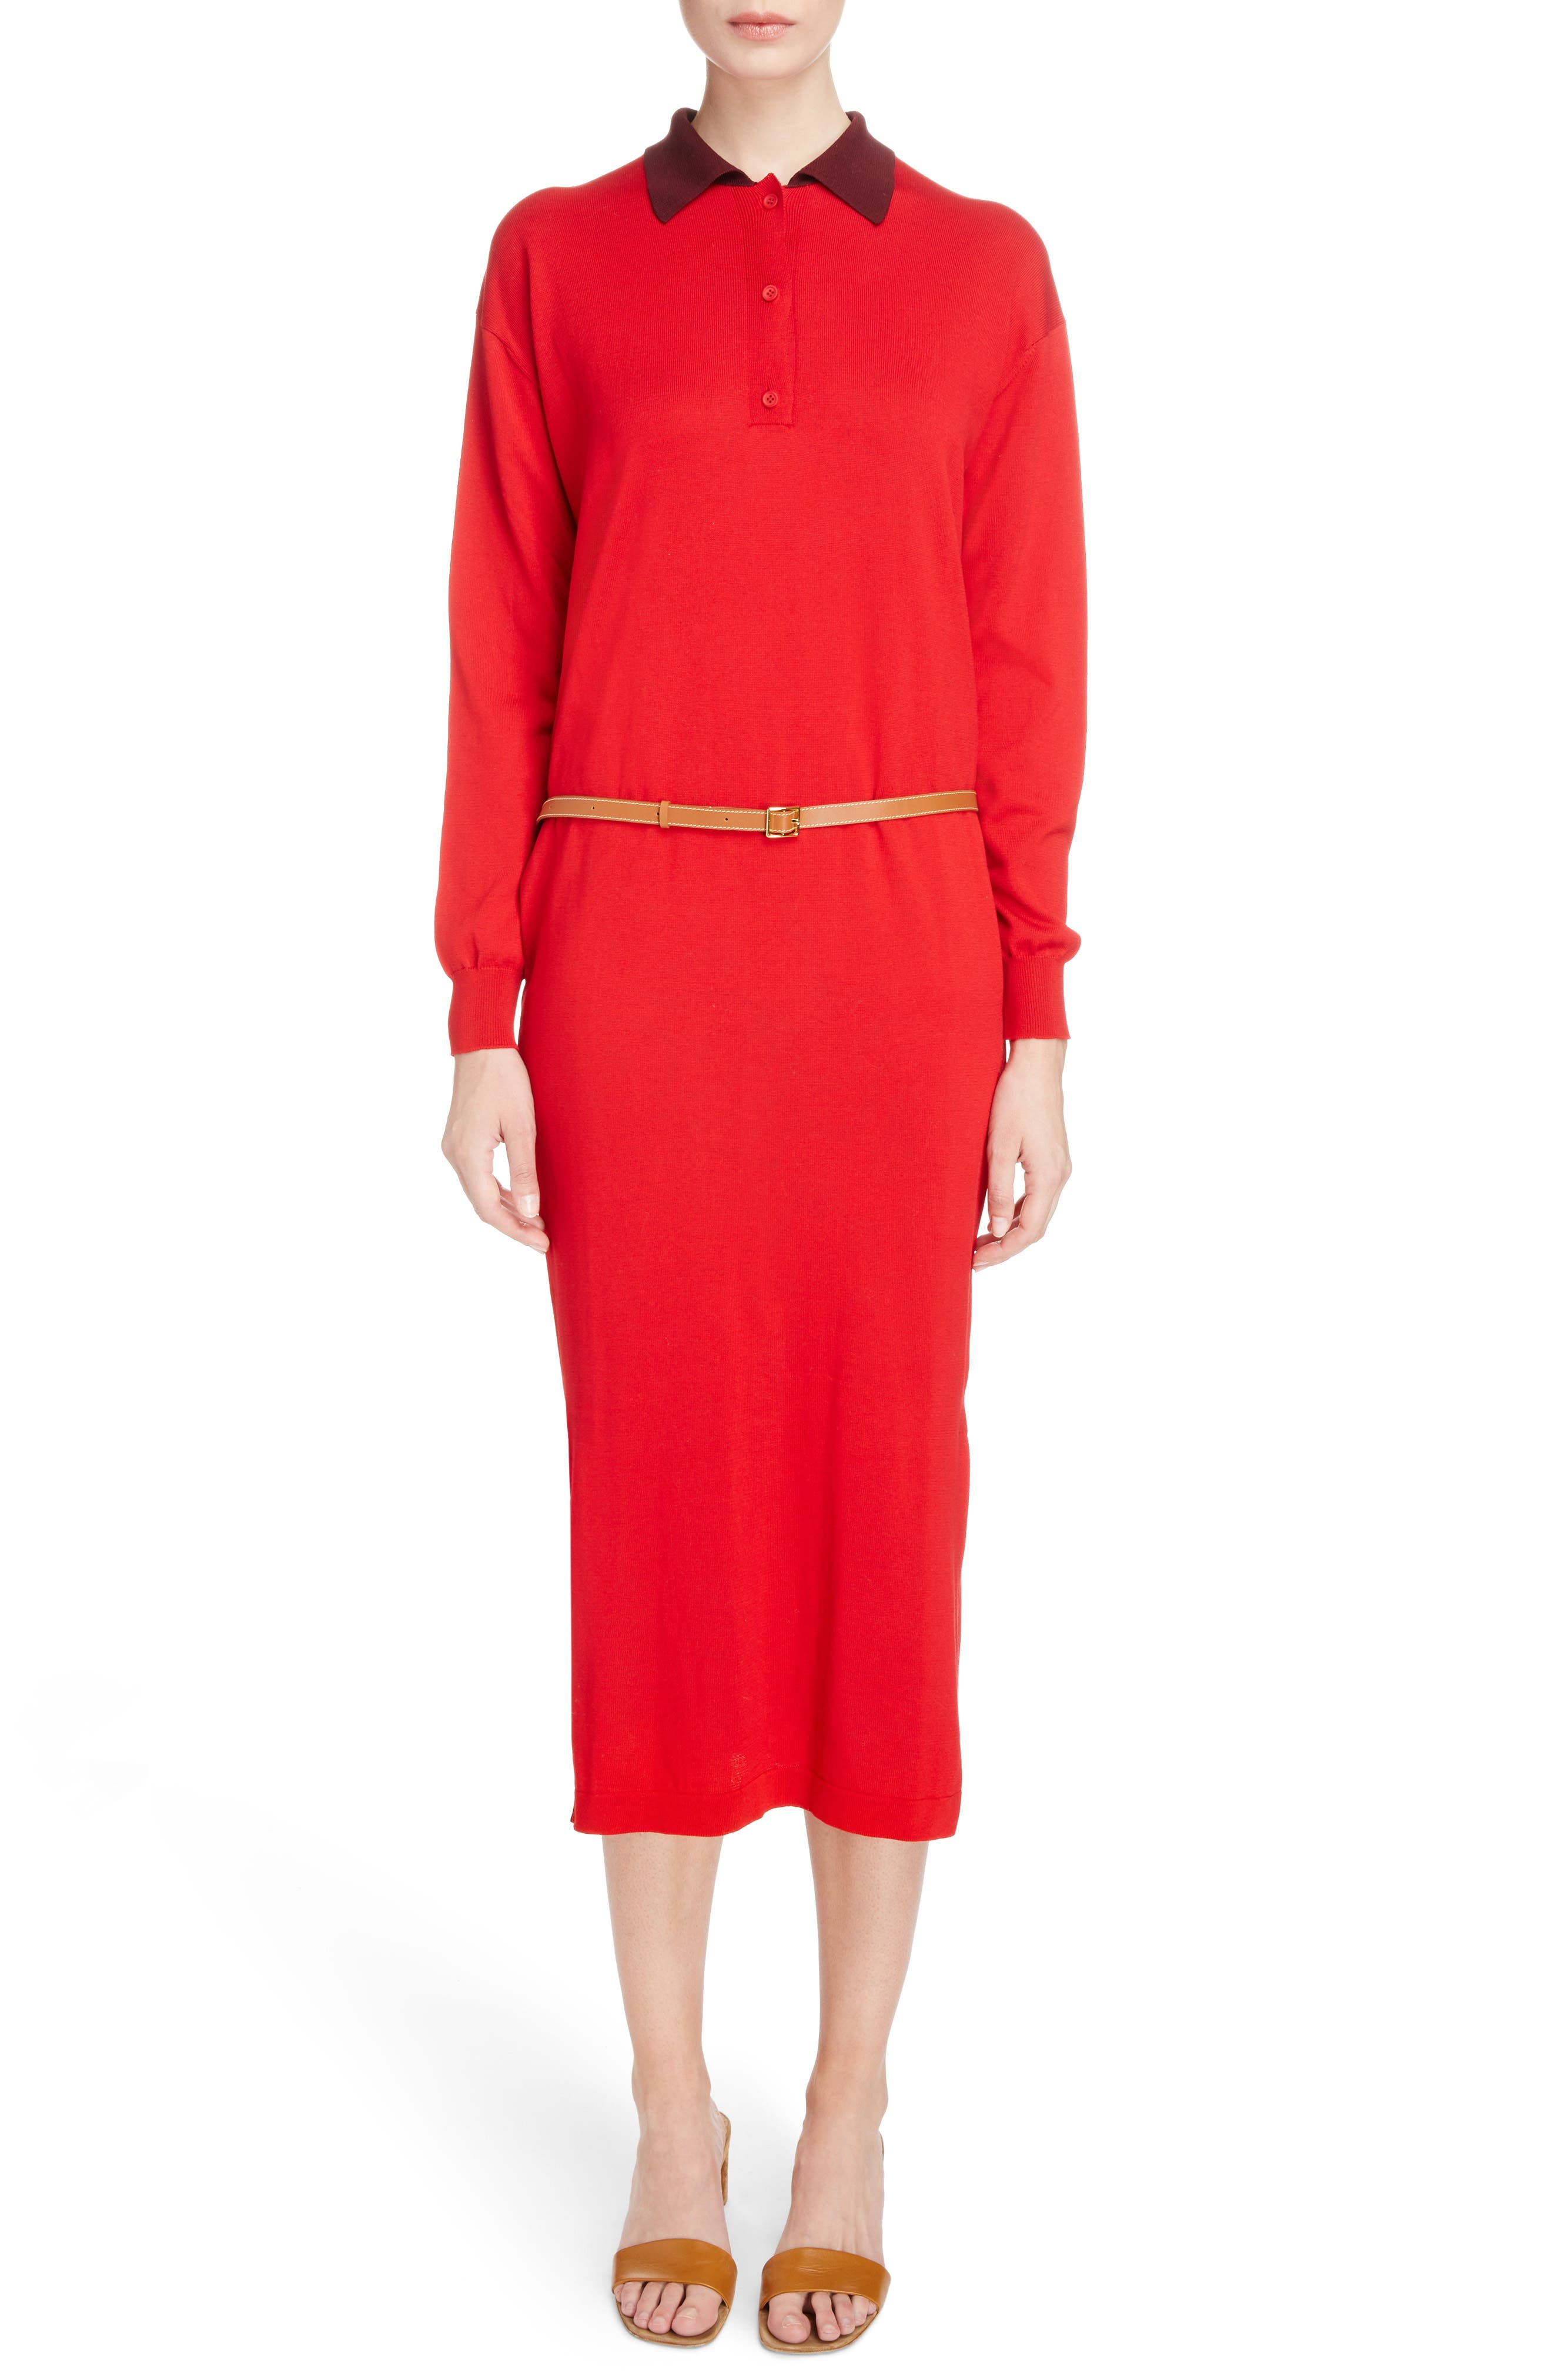 Loewe Belted Polo Dress